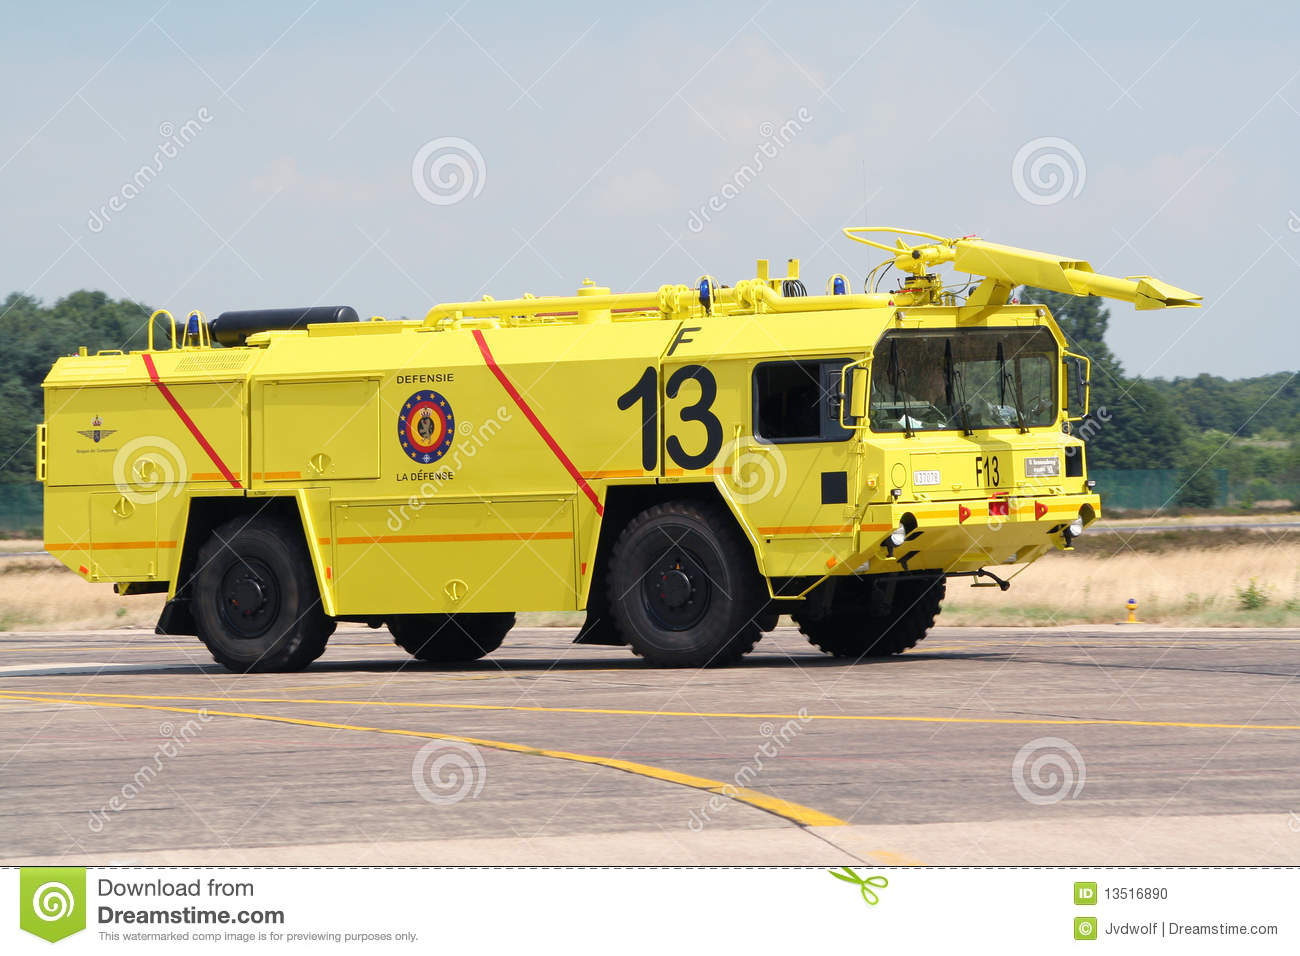 Stock Illustration Firetruck Vector Illustration Clip Art Eps File Image49281005 additionally Reflected Ceilingplan Solutions in addition Mousetrap together with ZWxlY3RyaWNhbCBzeW1ib2wgZG9vcmJlbGw also Interior Helpful Tips. on fire alarm blueprints